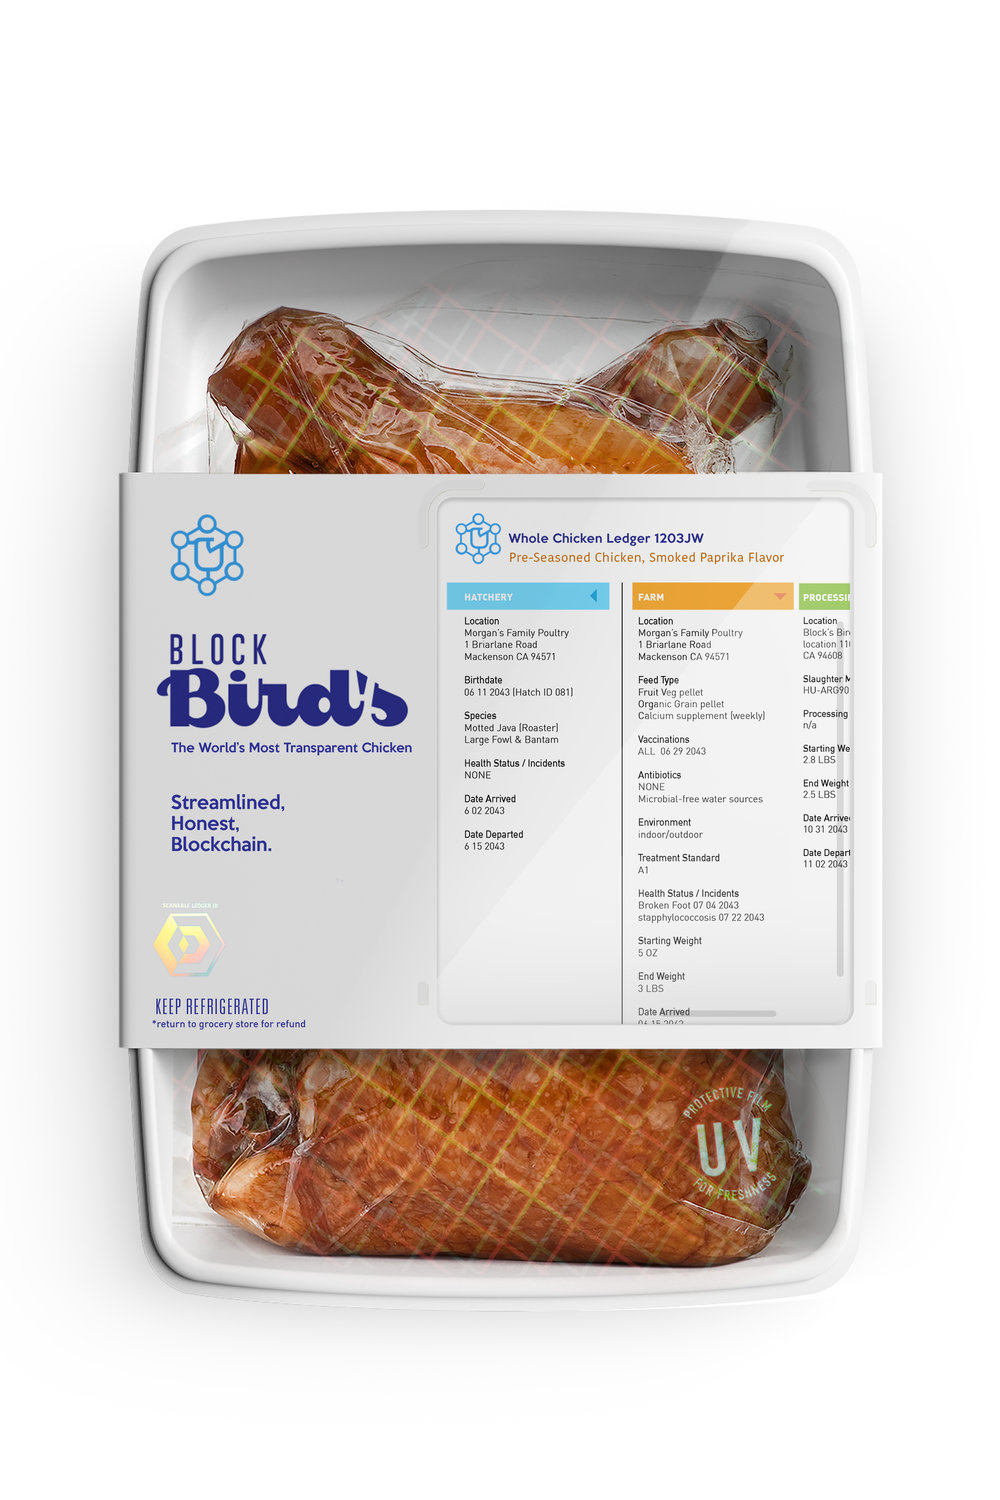 Block Bird's    Block Bird's is the first, fully transparent supply chain line of chicken products verified by Blockchain technology. All chicken is sourced from a multitude of small farms in the American midwest, where the entire journey of the chicken, from egg to grocery store, is recorded and plainly visible on the front of the package.